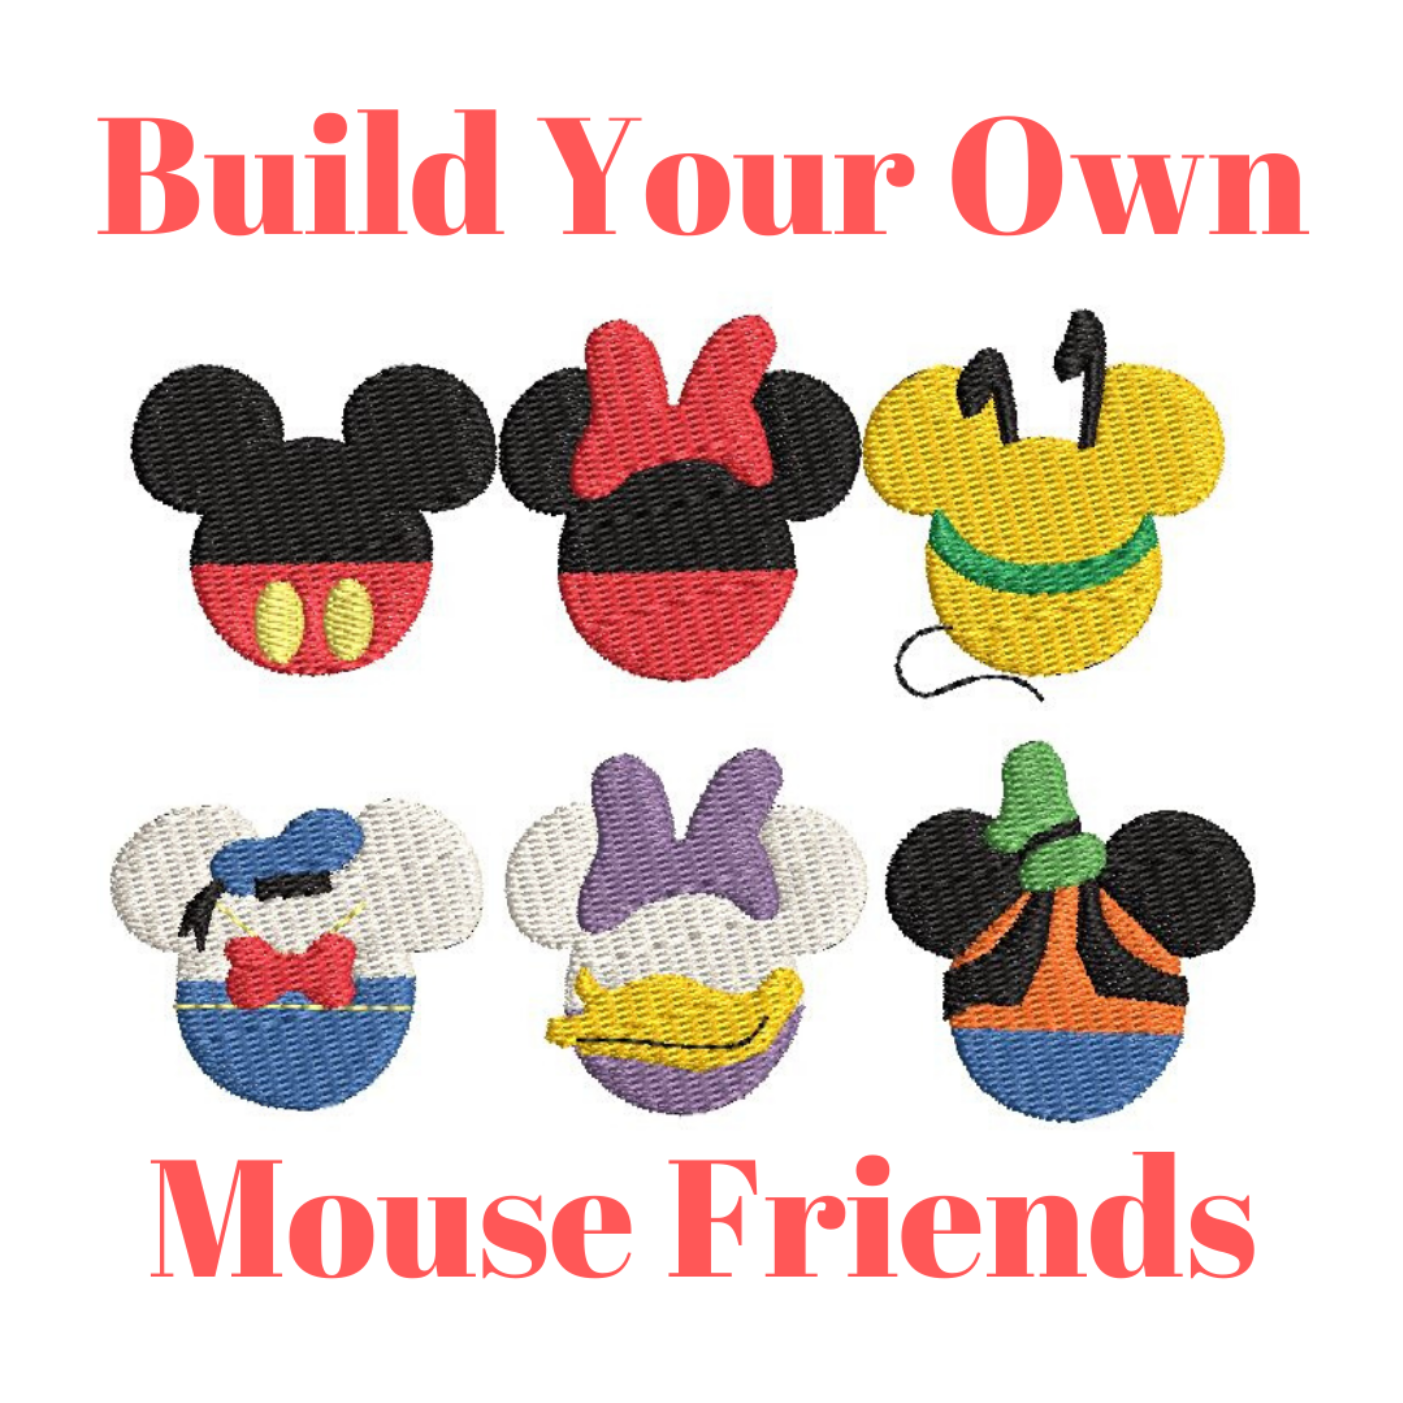 Build Your Own Mouse Friends Characters Fill Machine Embroidery Designs Character Theme Park